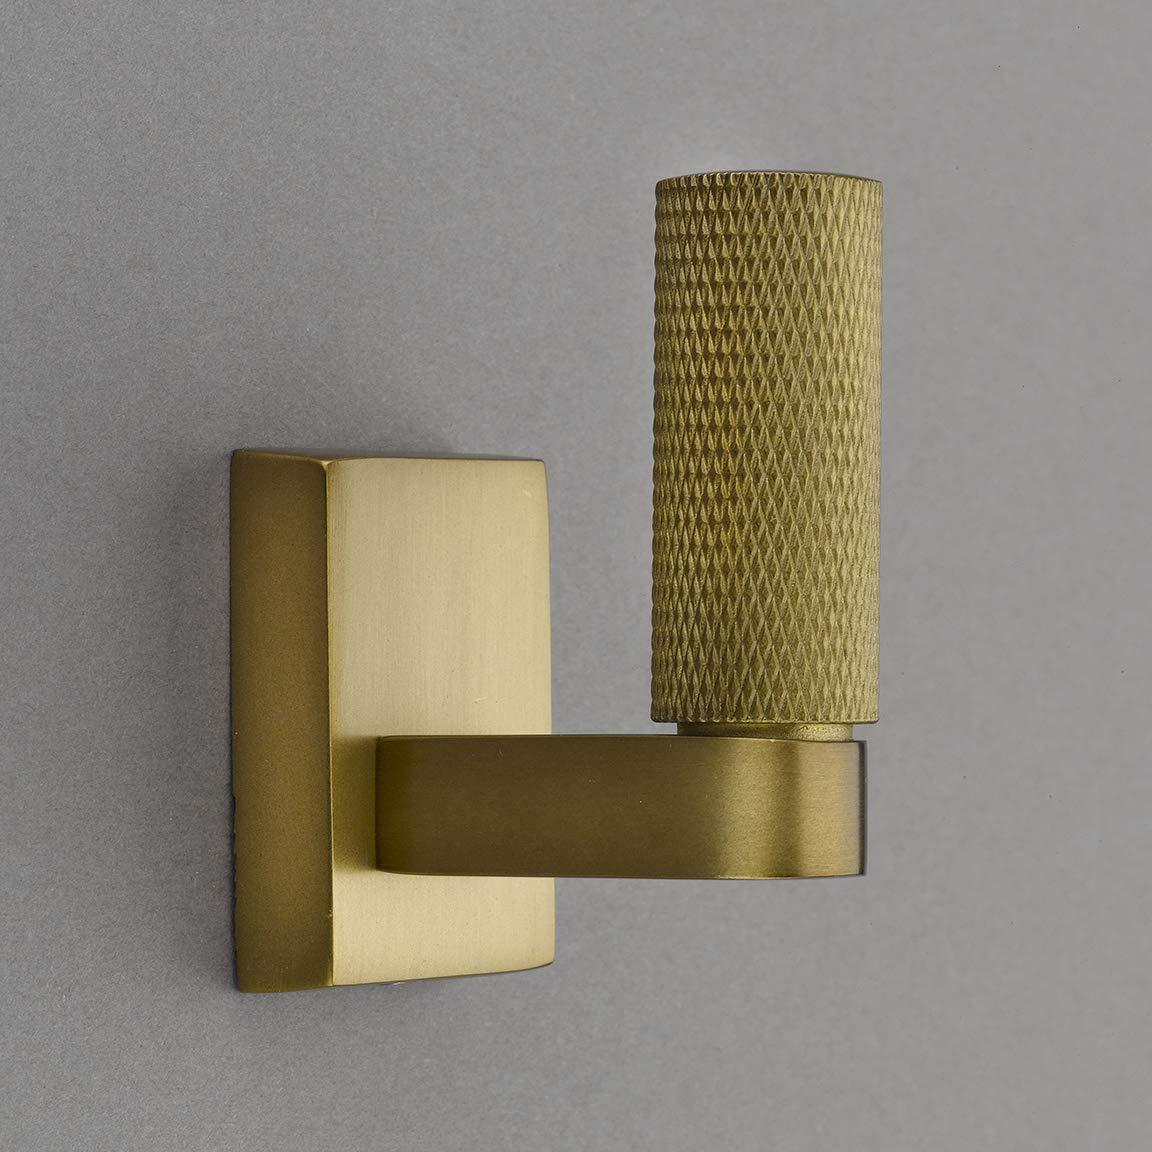 Belle Knurled Collection Burnished Brass Towel Hook/Robe Hook - Good for Kitchen, Bathroom, Bedroom, Or Closet Hardware - P100-11/4556